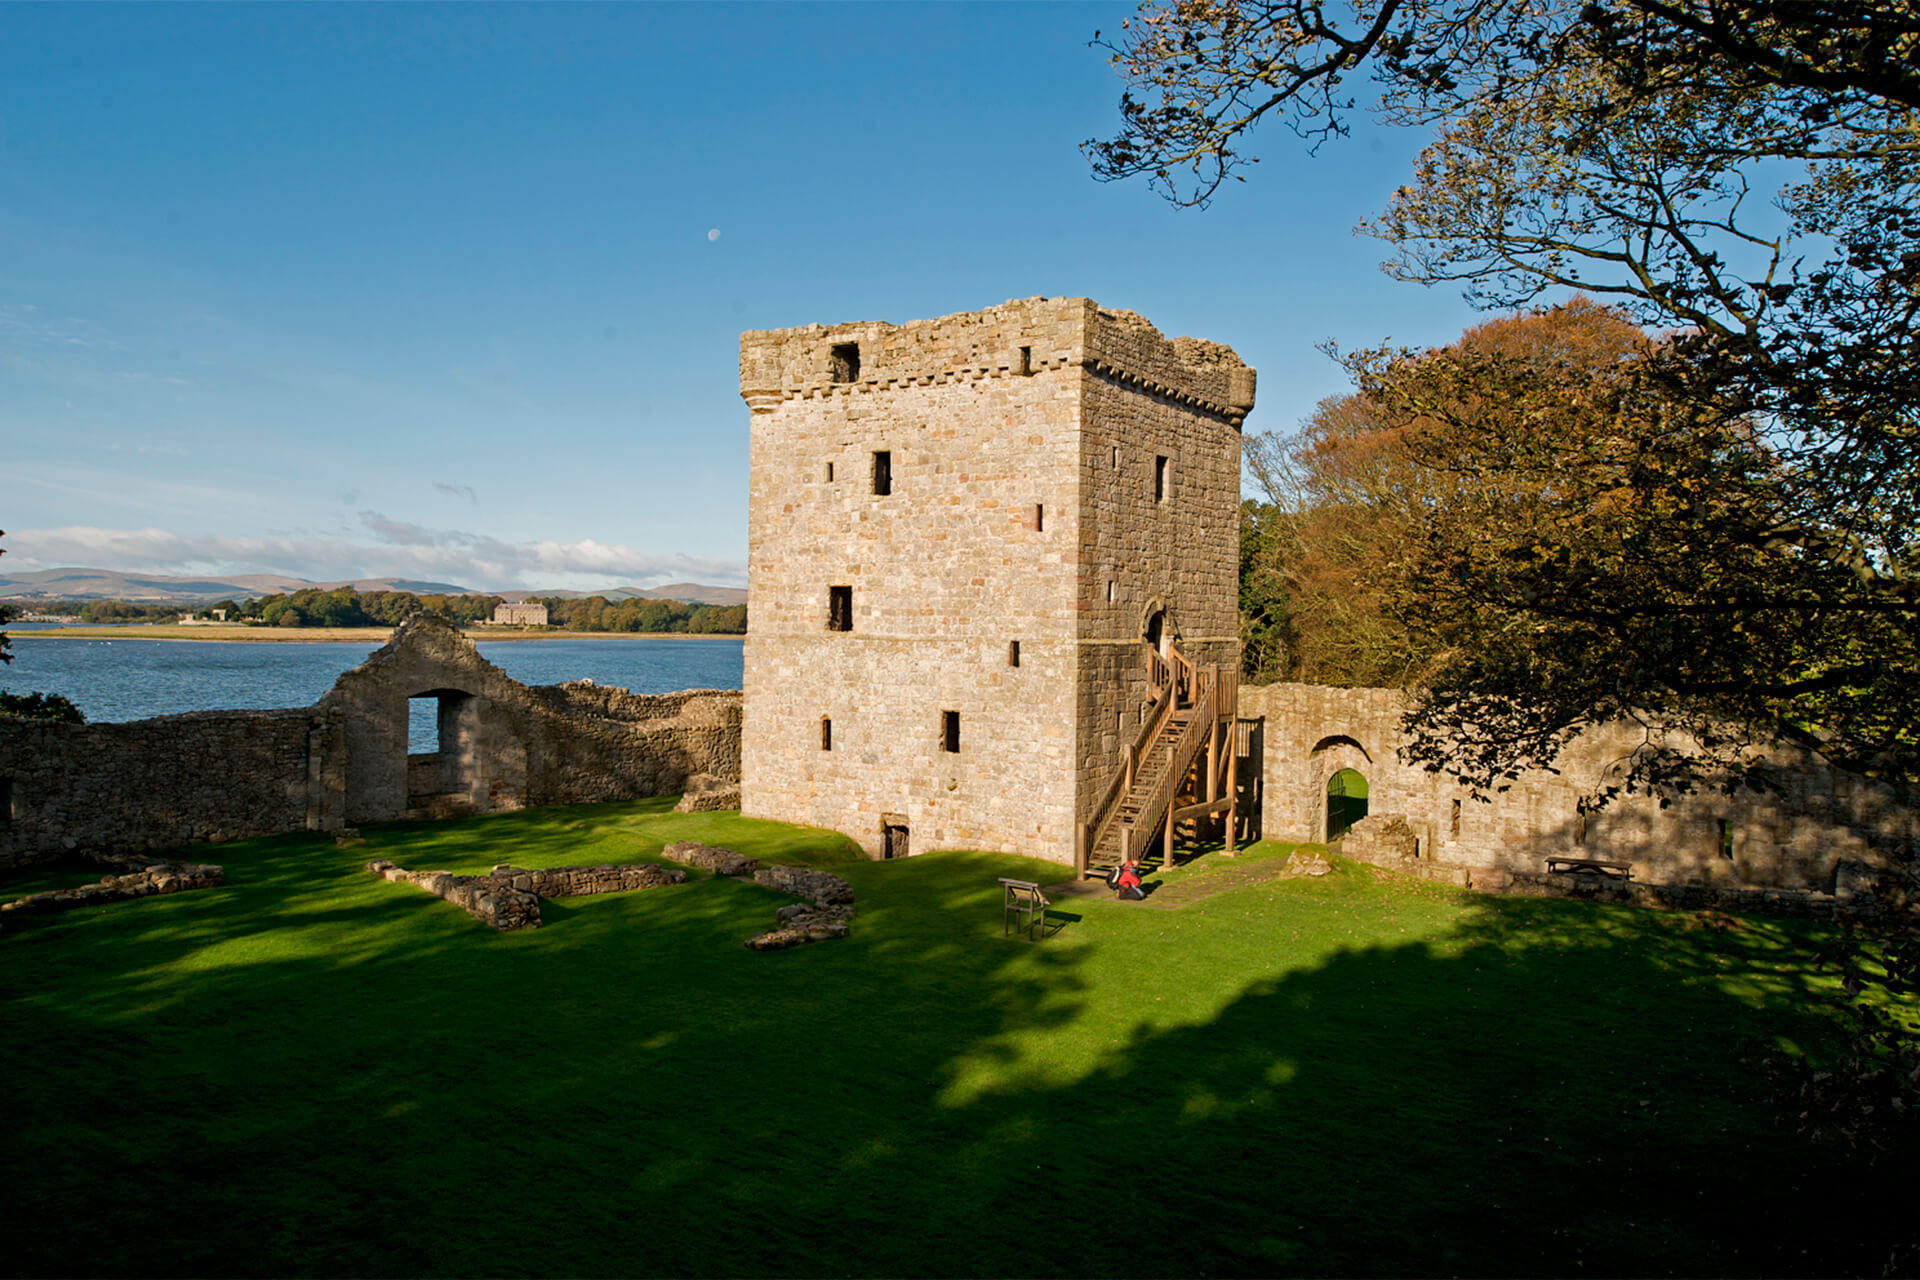 Loch Leven Castle in Perth and Kinross